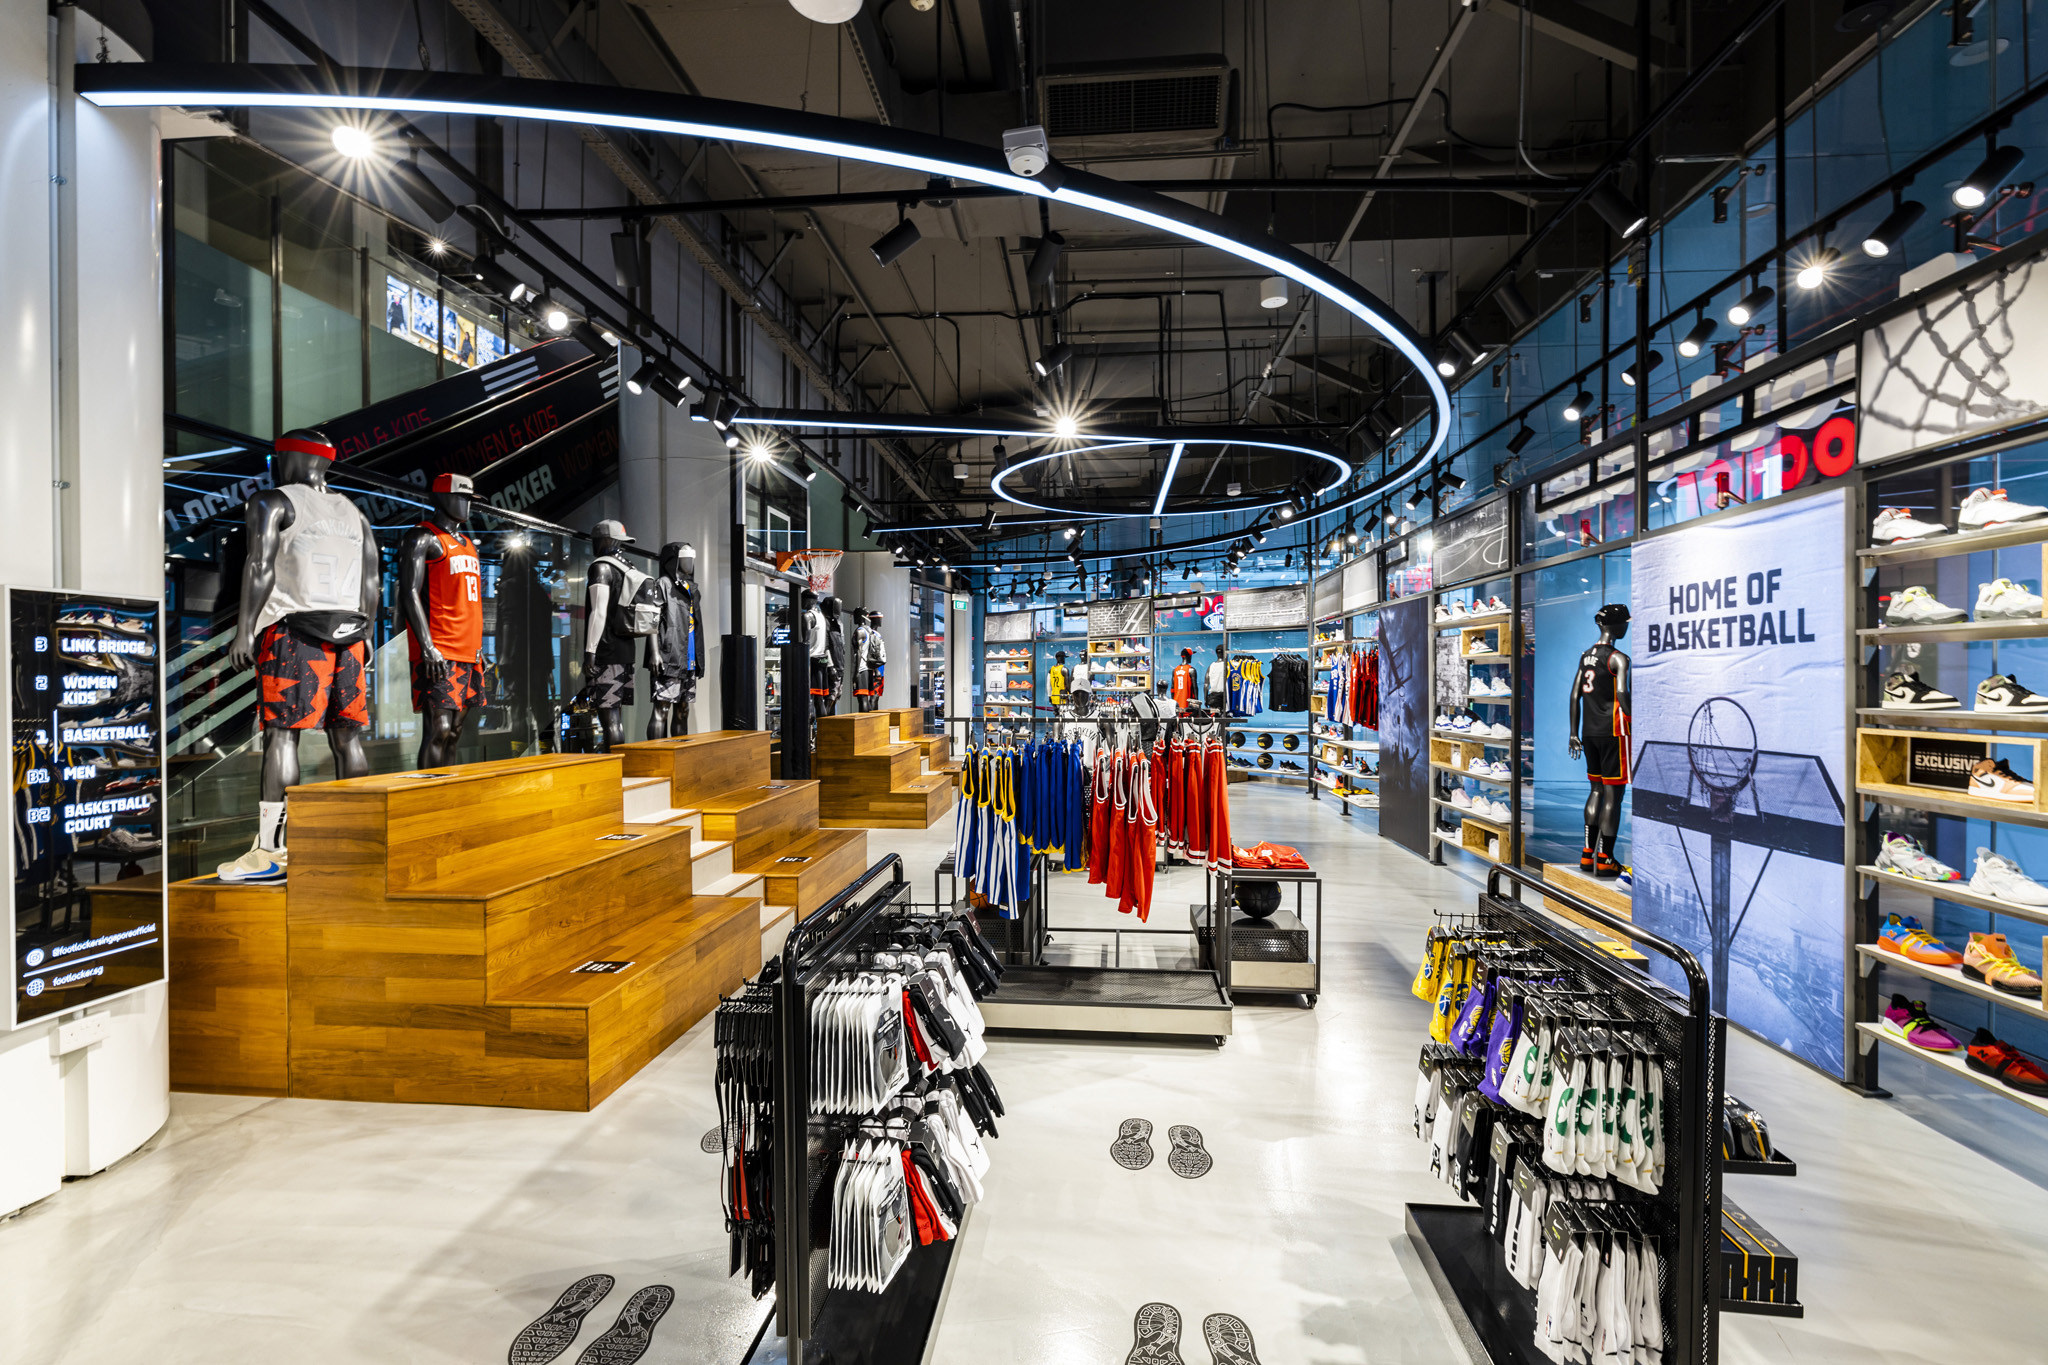 Foot Locker is opening its sixth and largest store to date in Singapore and is making its debut in Macau, China, with two new locations.